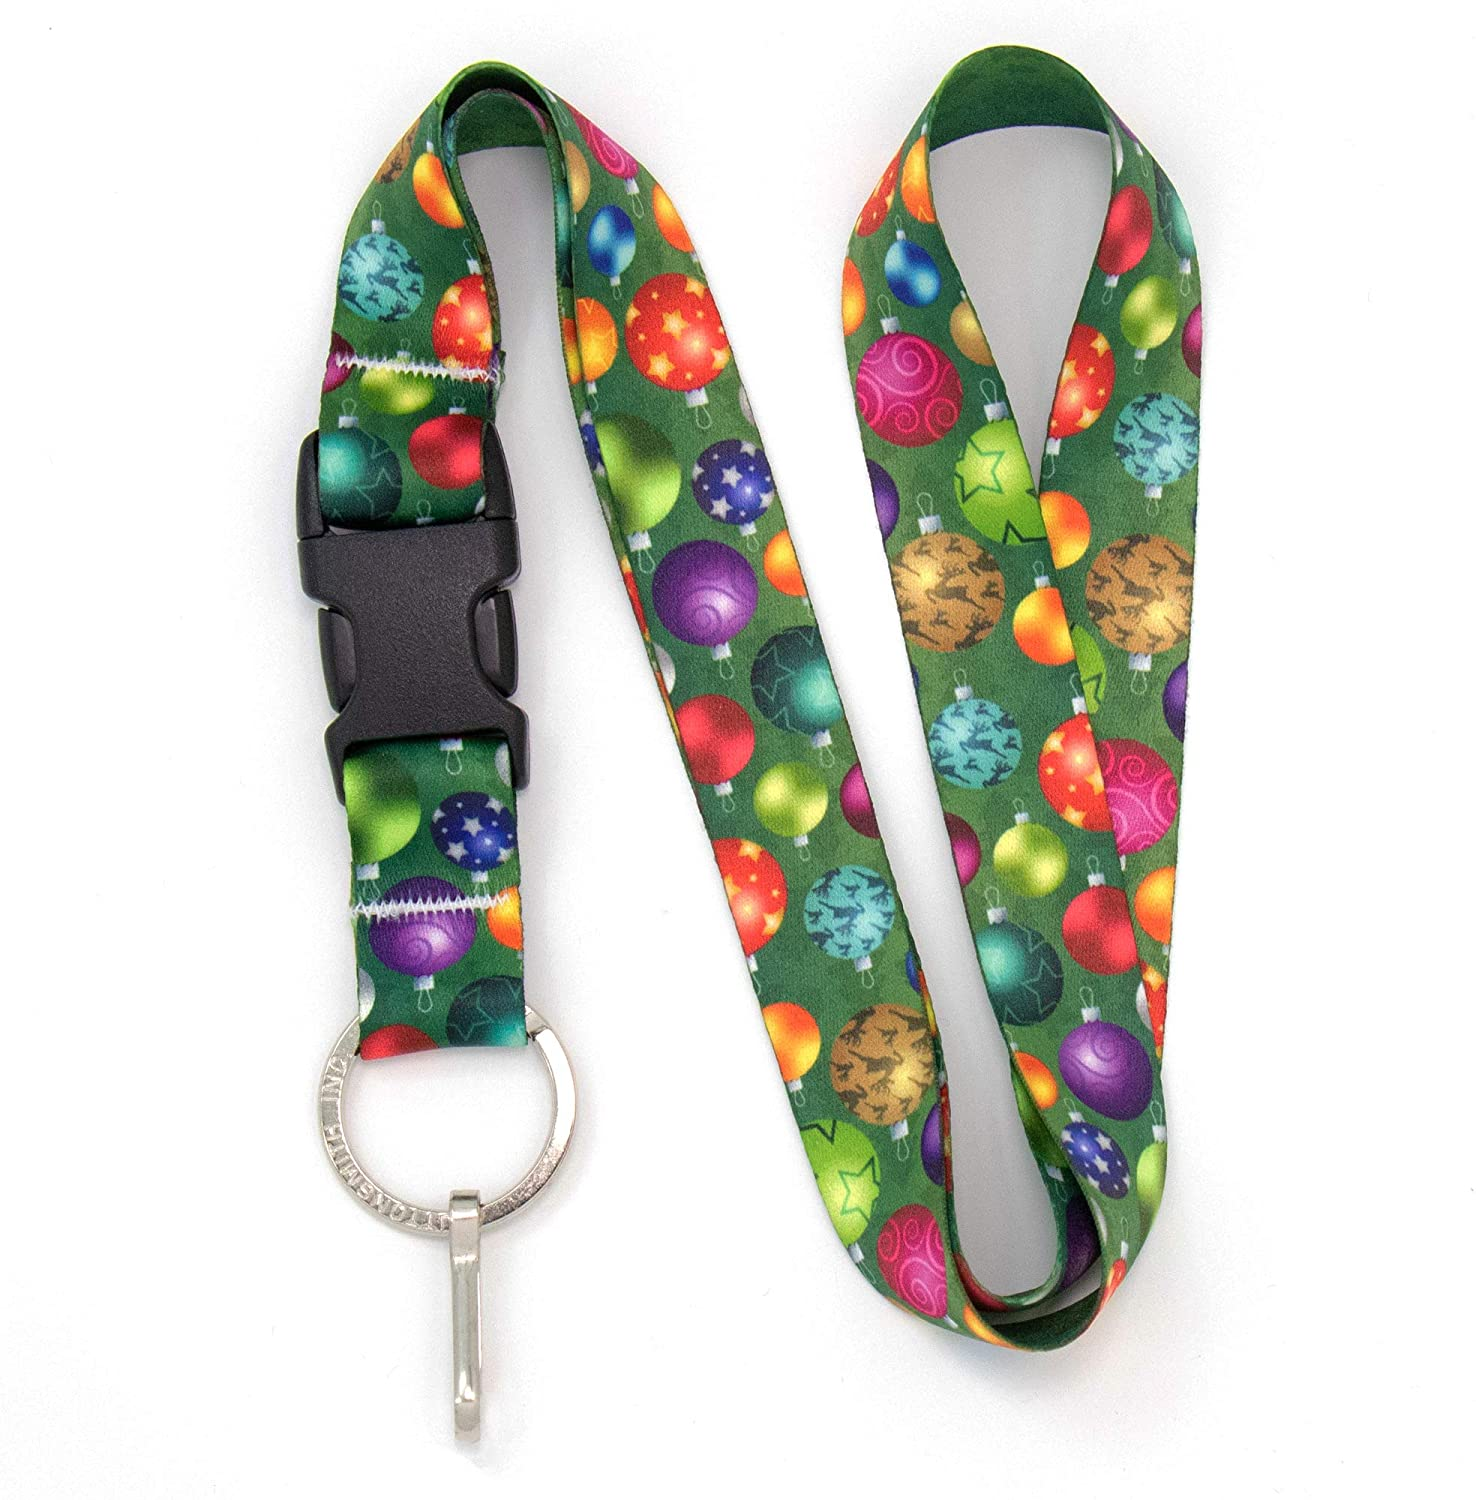 Buttonsmith Christmas Ornaments Premium Lanyard - with Buckle and Flat Ring - Made in The USA